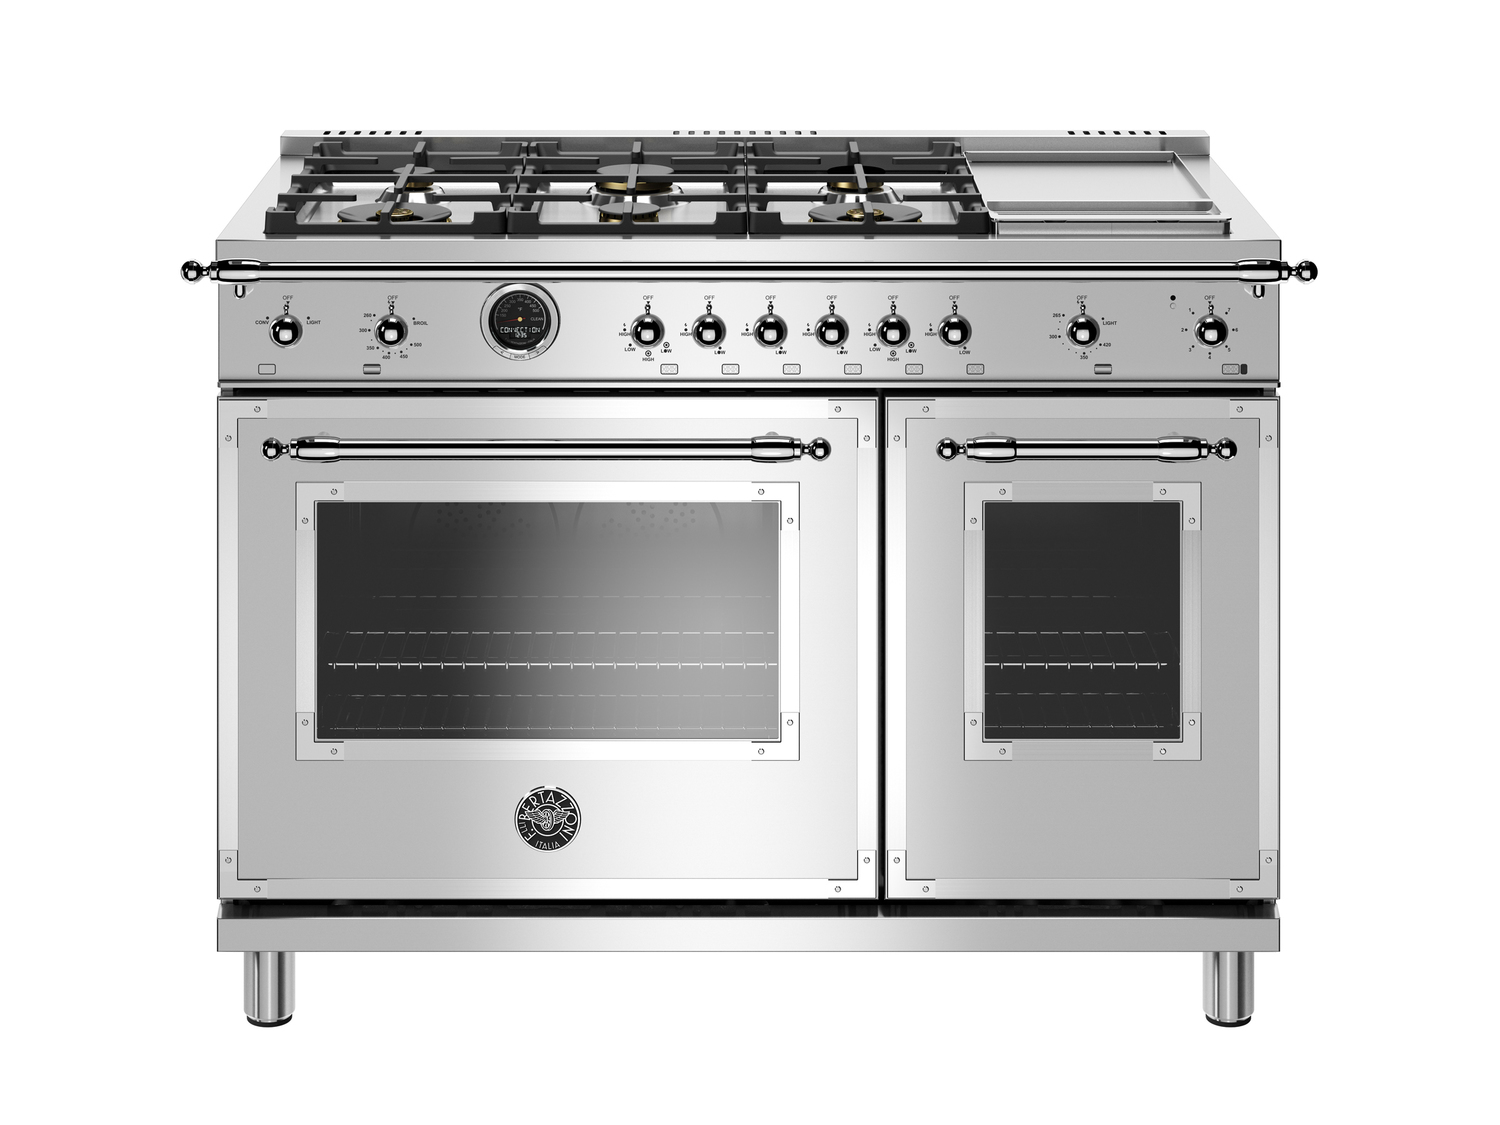 Bertazzoni48 Inch Dual Fuel Range, 6 Brass Burners And Griddle, Electric Self Clean Oven Stainless Steel